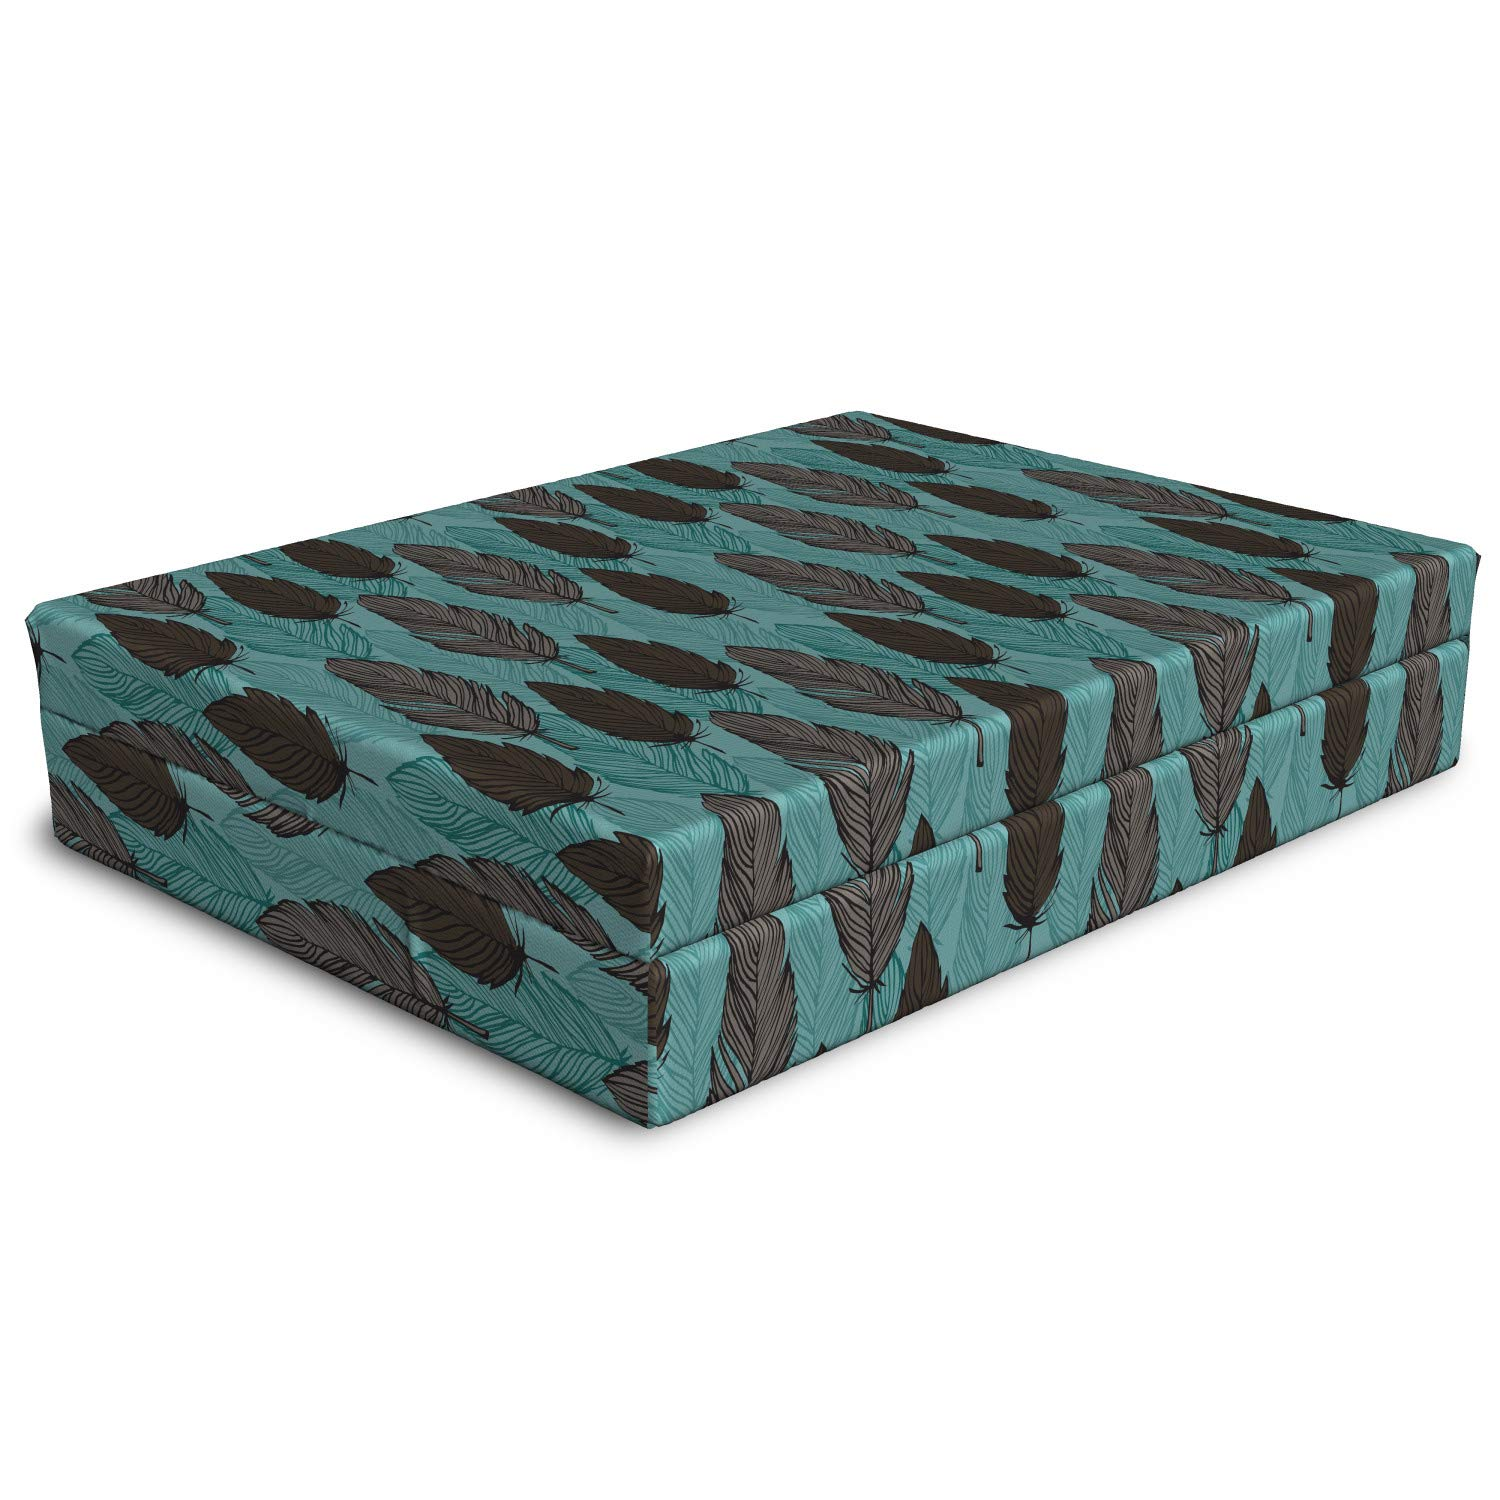 Lunarable Feather Dog Bed, Bohemian Plume Motif in Outline and Earth Tones Designs, Dog Pillow with High Resilience Visco Foam for Pets, 32'' x 24'' x 6'', Pale Teal Warm Taupe and Dark Taupe